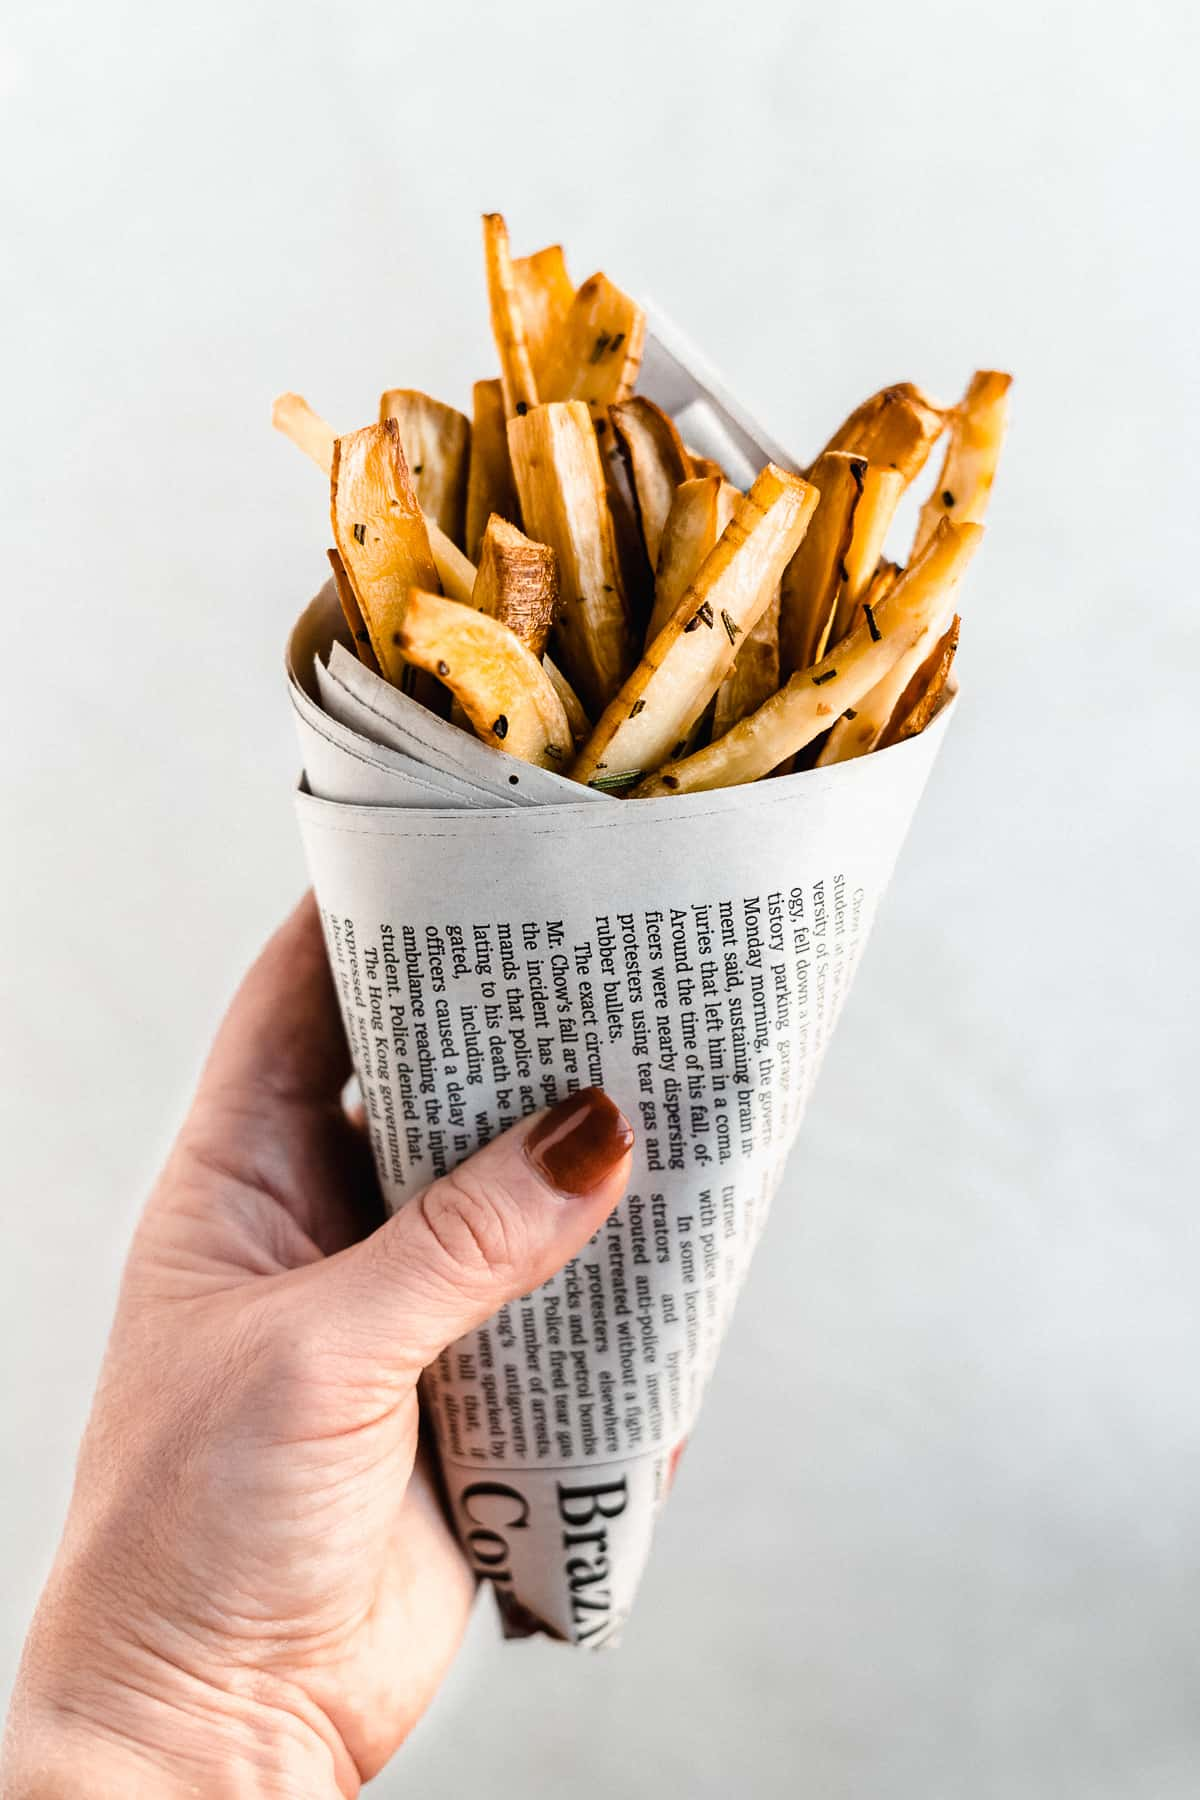 Side view image of a hand holding a newspaper cone filled with Baked Parsnip Fries.